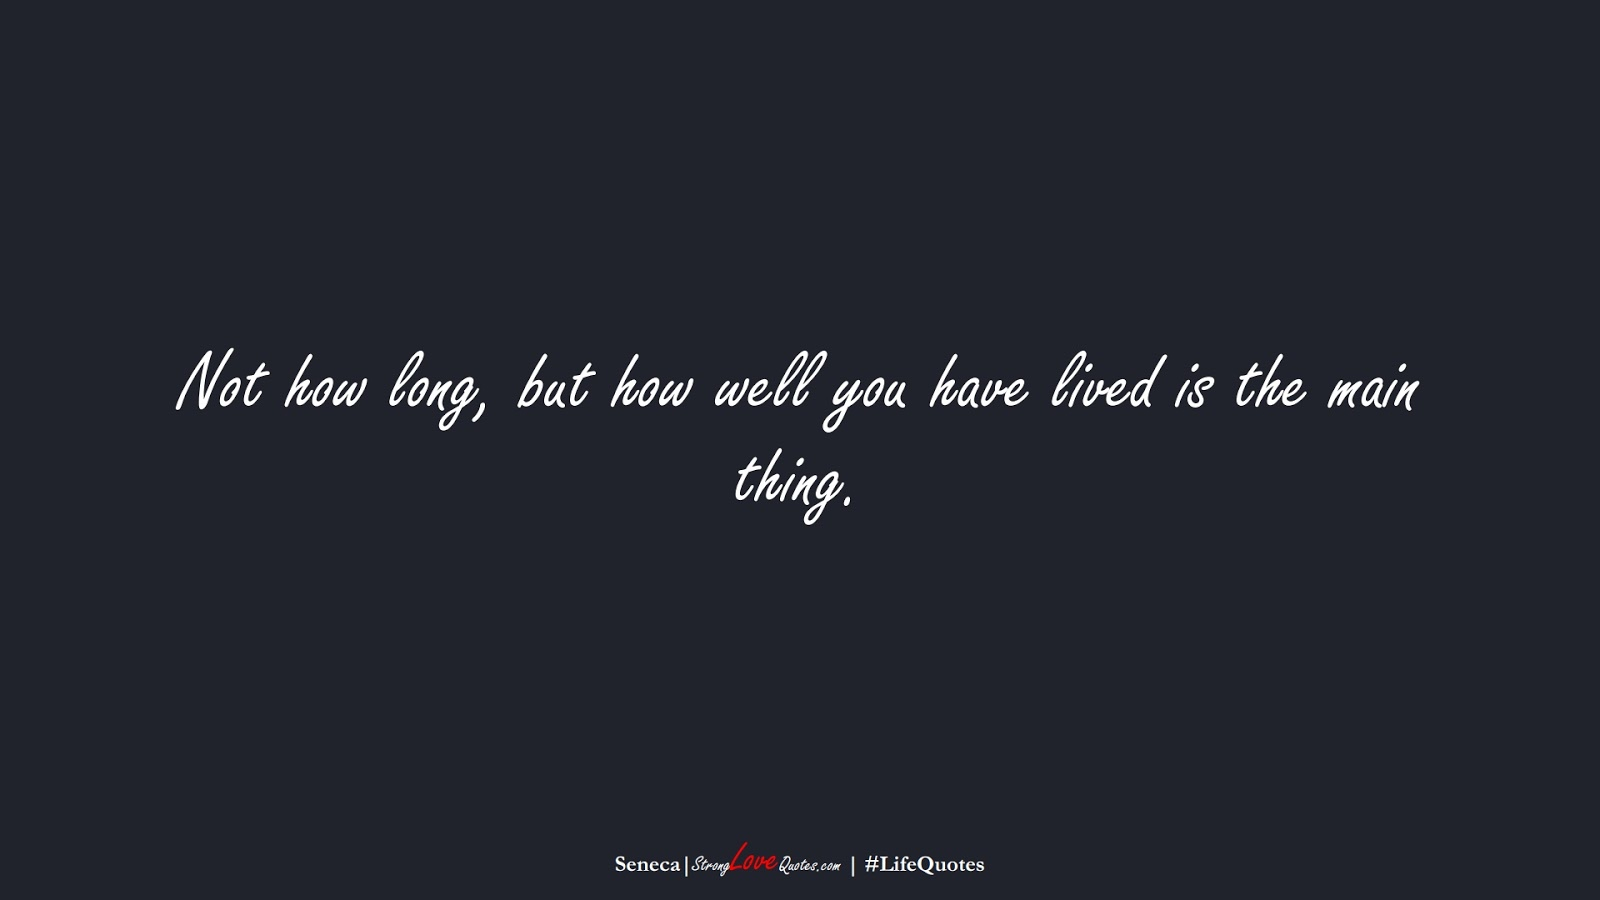 Not how long, but how well you have lived is the main thing. (Seneca);  #LifeQuotes